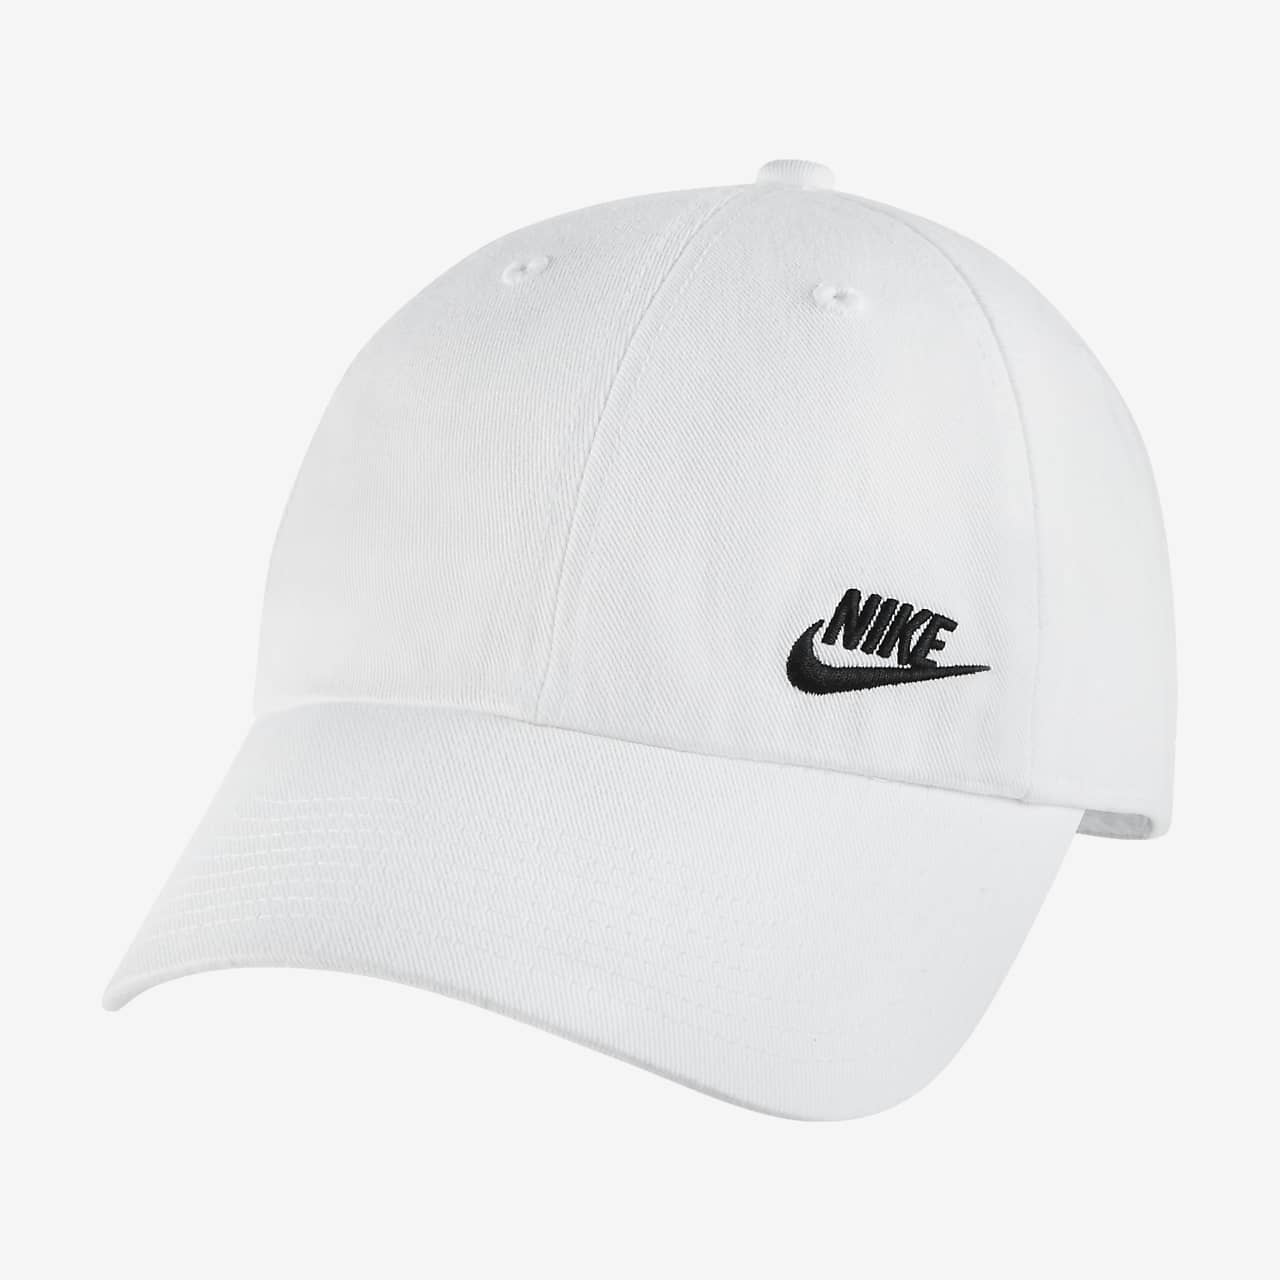 Nike Sportswear Heritage 86 Futura Adjustable Hat